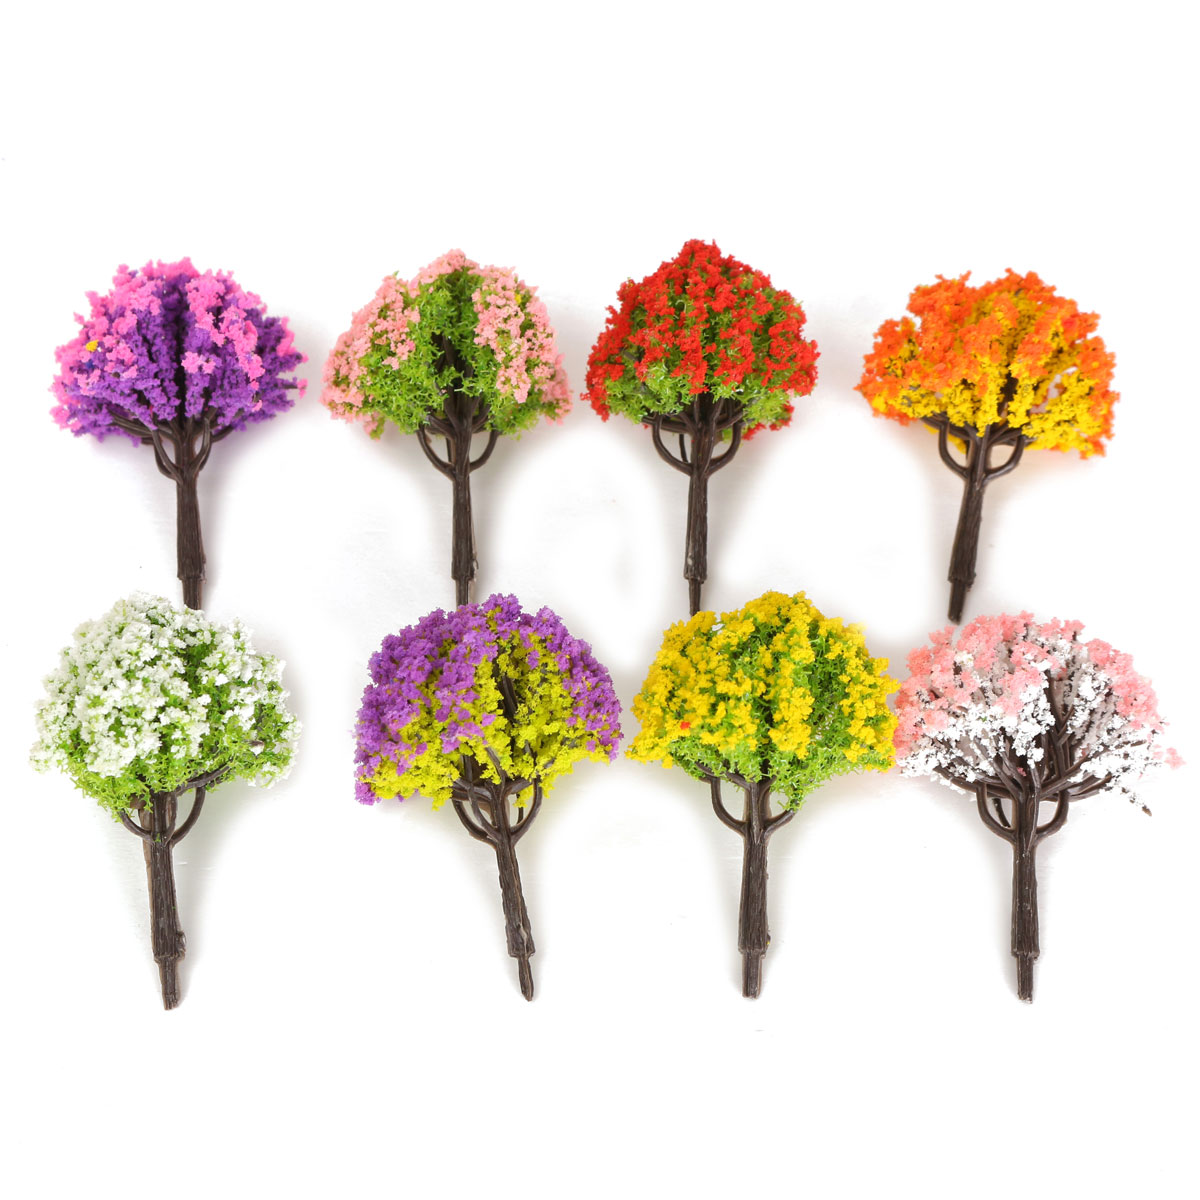 1 2x diy miniature tree plants fairy garden accessories - Garden decor accessories ...